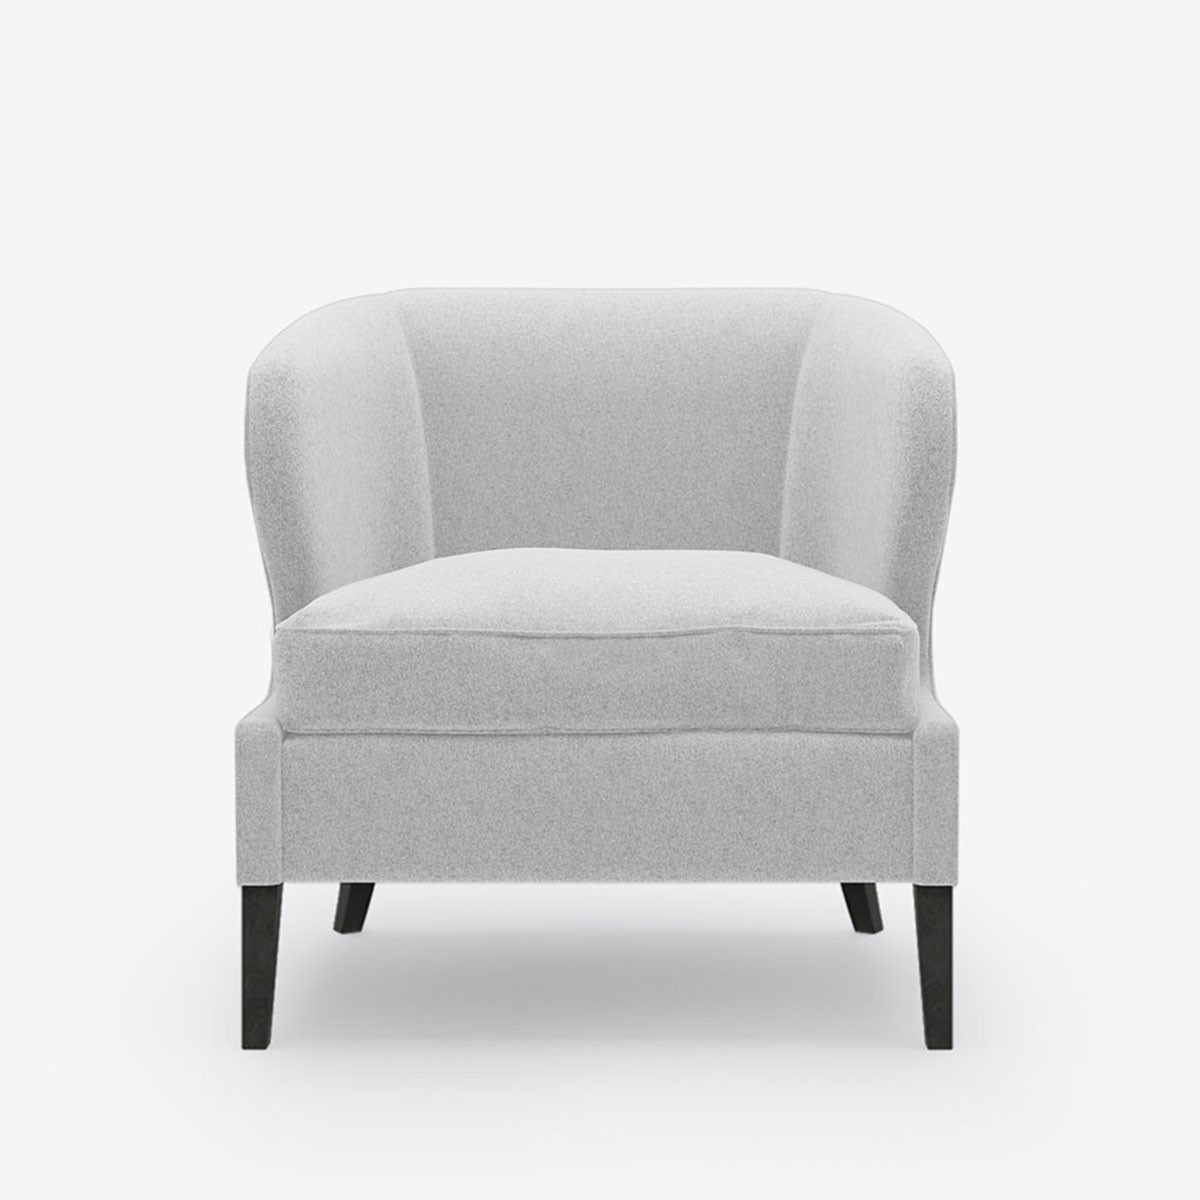 Image shows Livvy's Petite Chair in Wool Felt Soft Grey